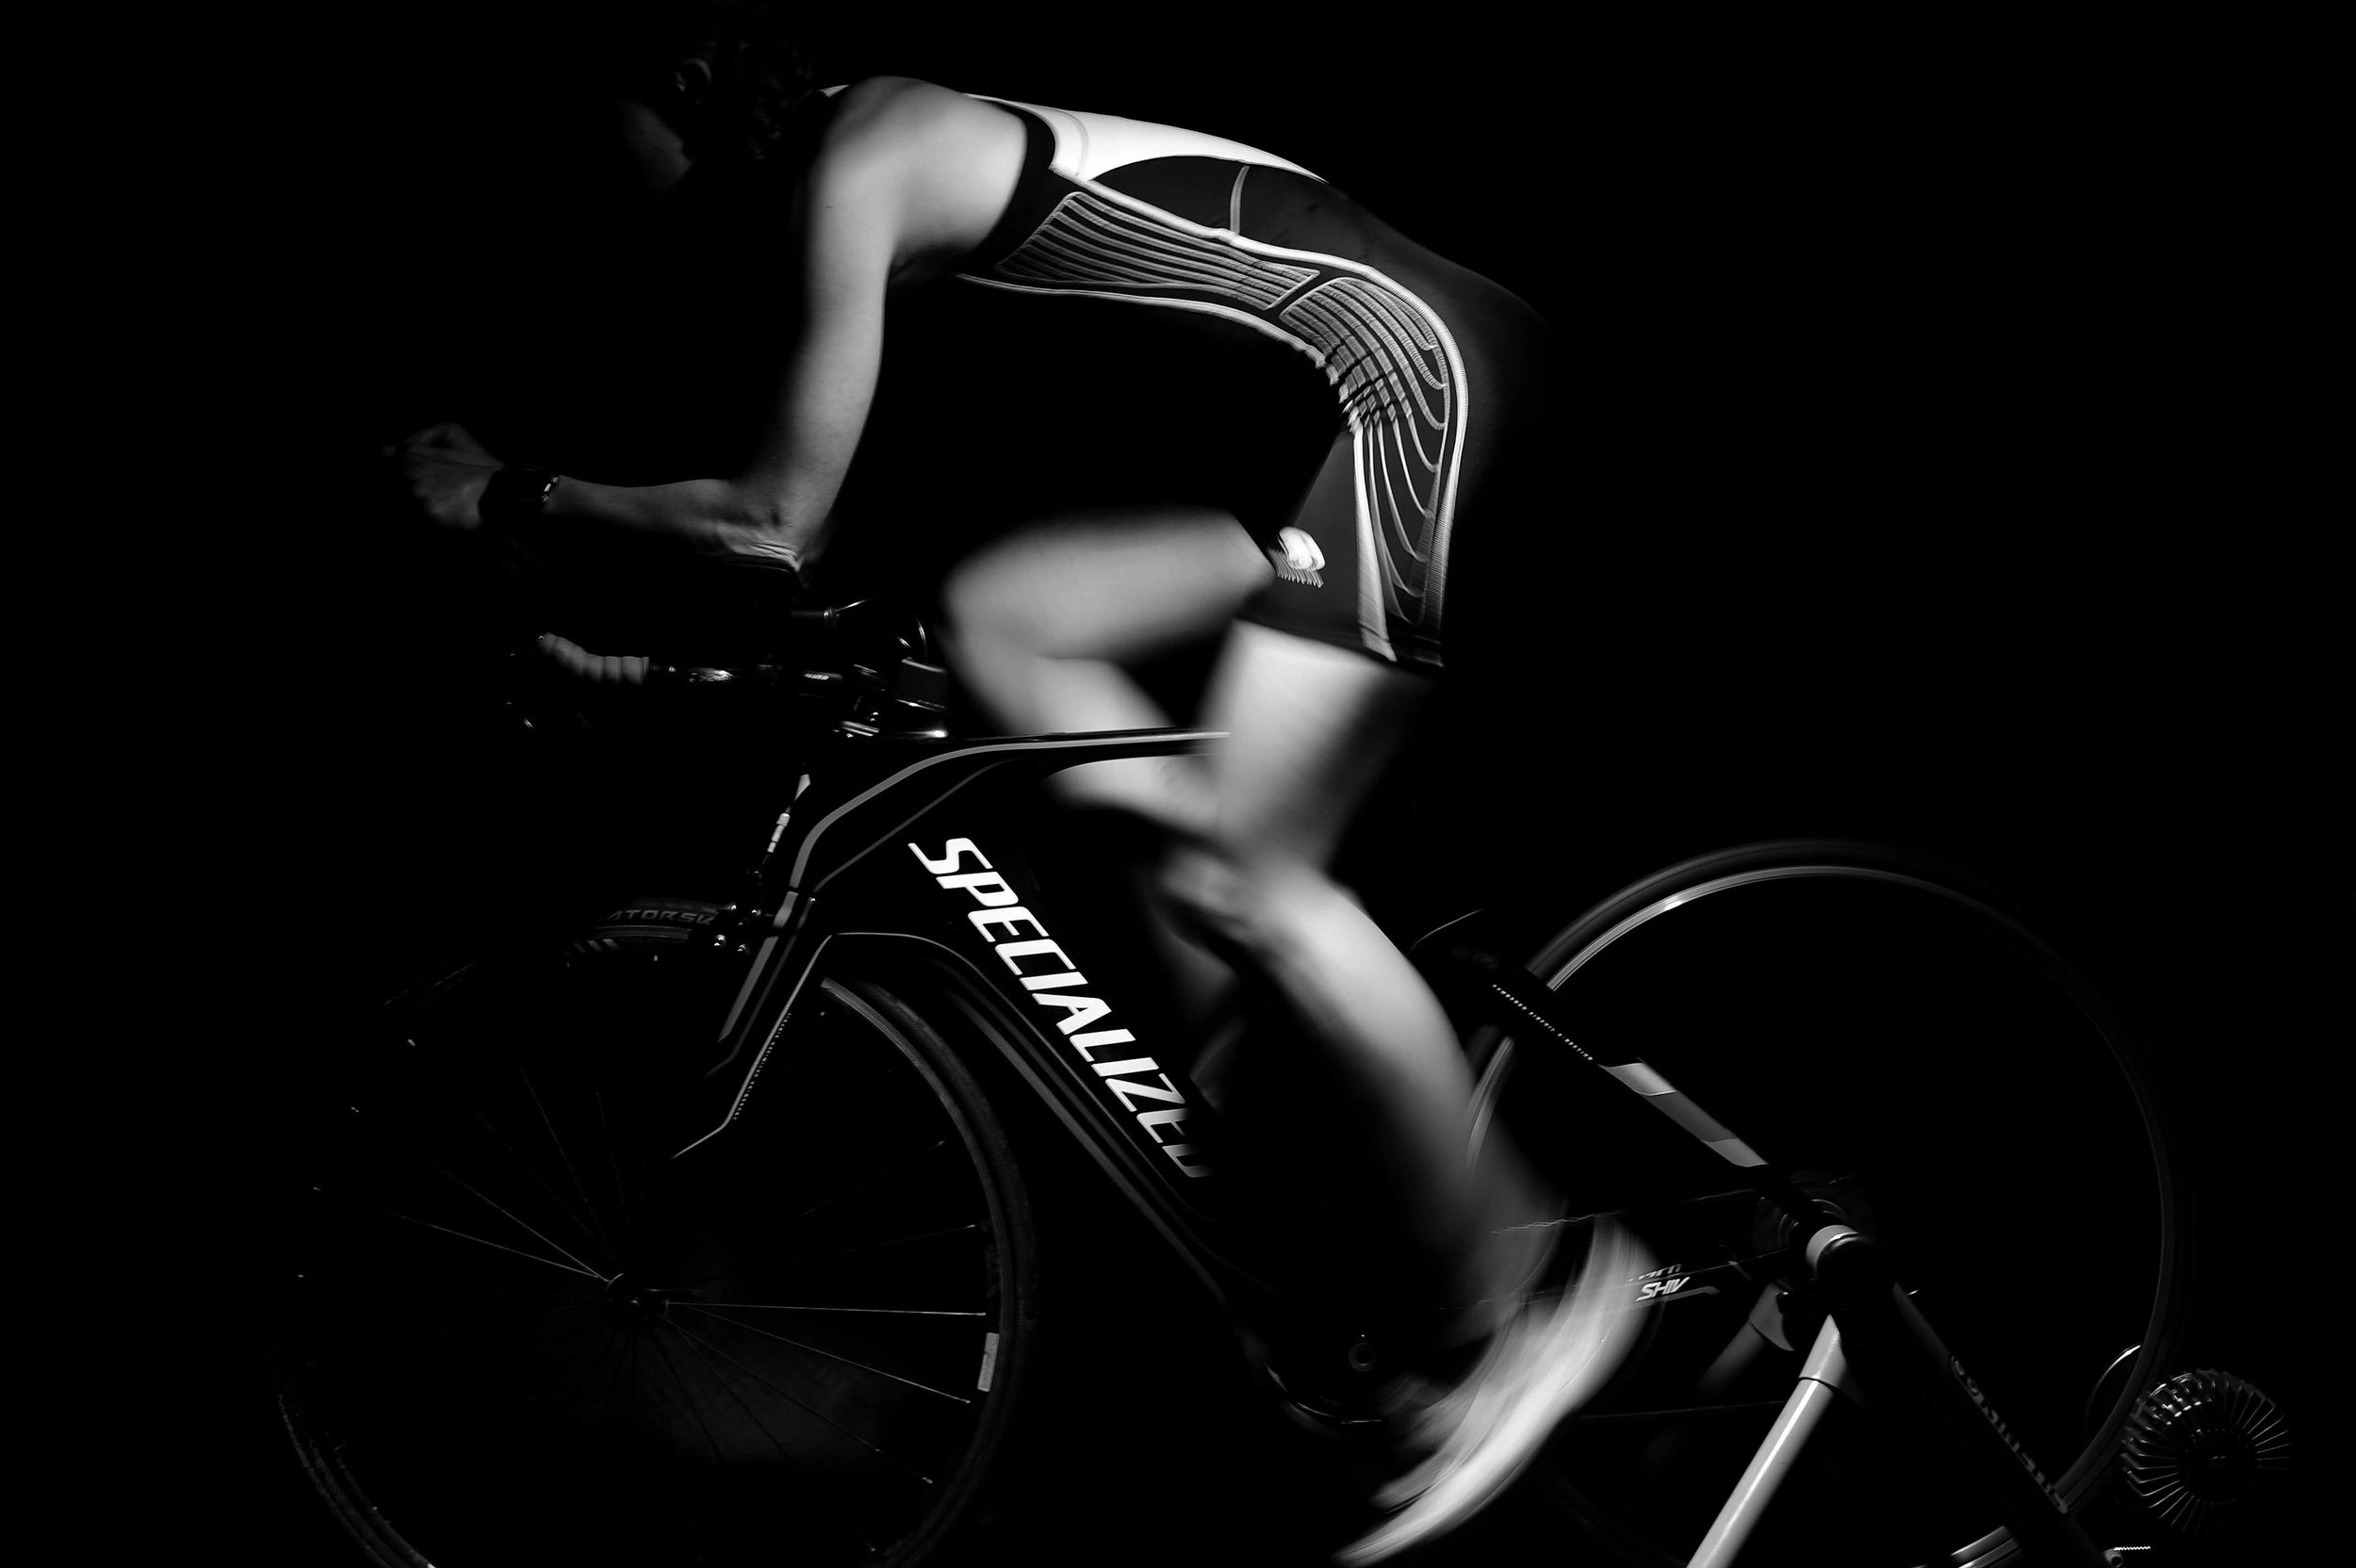 athlete-black-and-white-cycle-260409.jpg